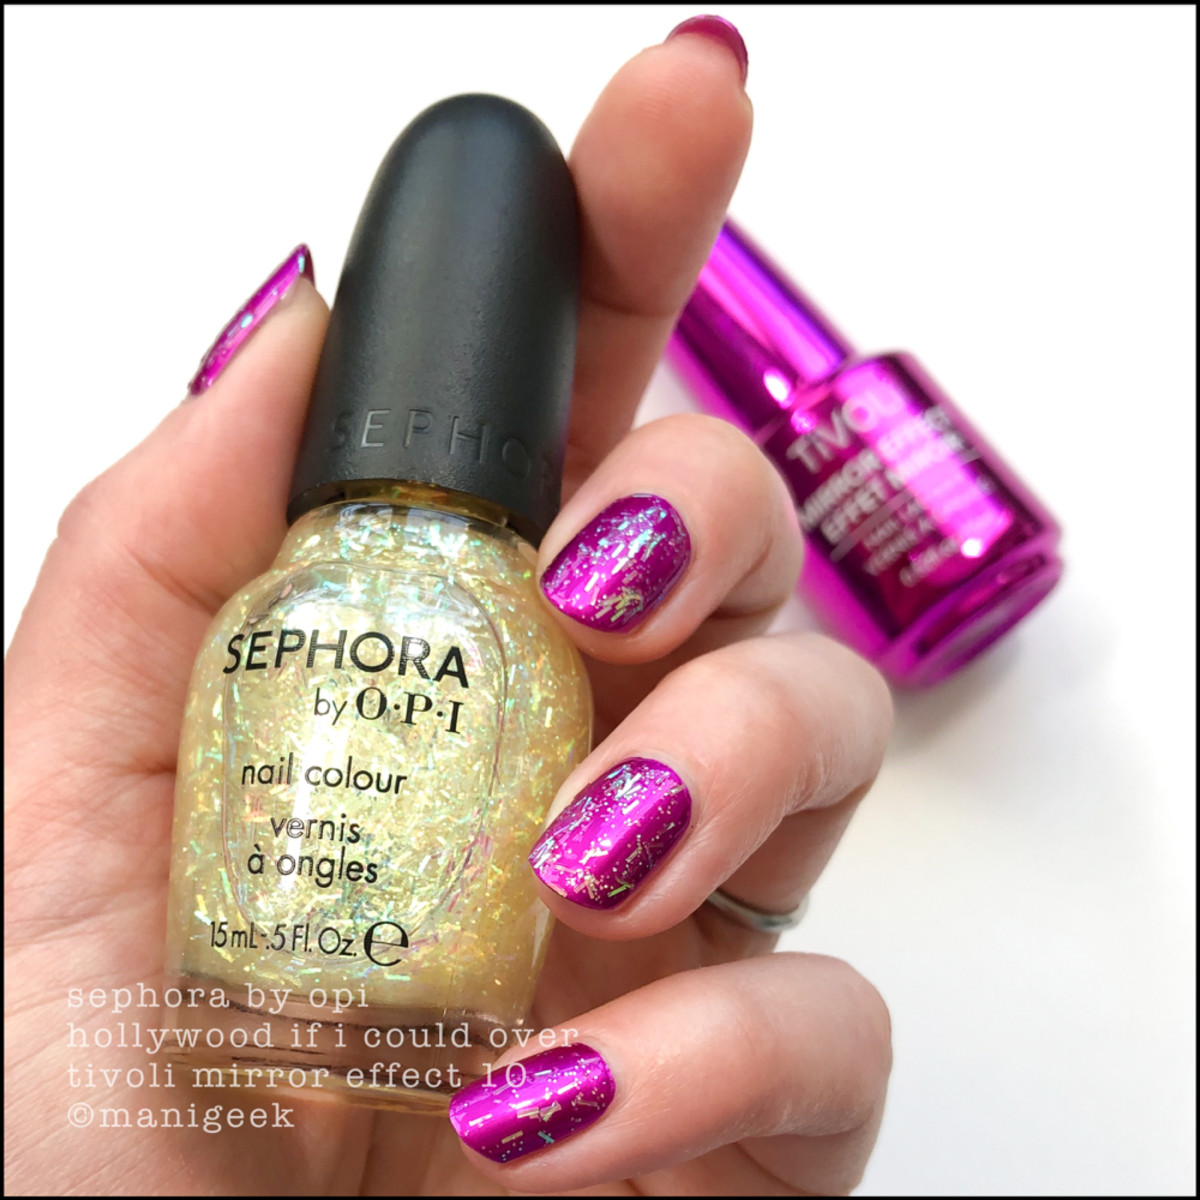 Sephora by OPI Hollywood If I Could over Tivoli Mirror Chrome Effect 10